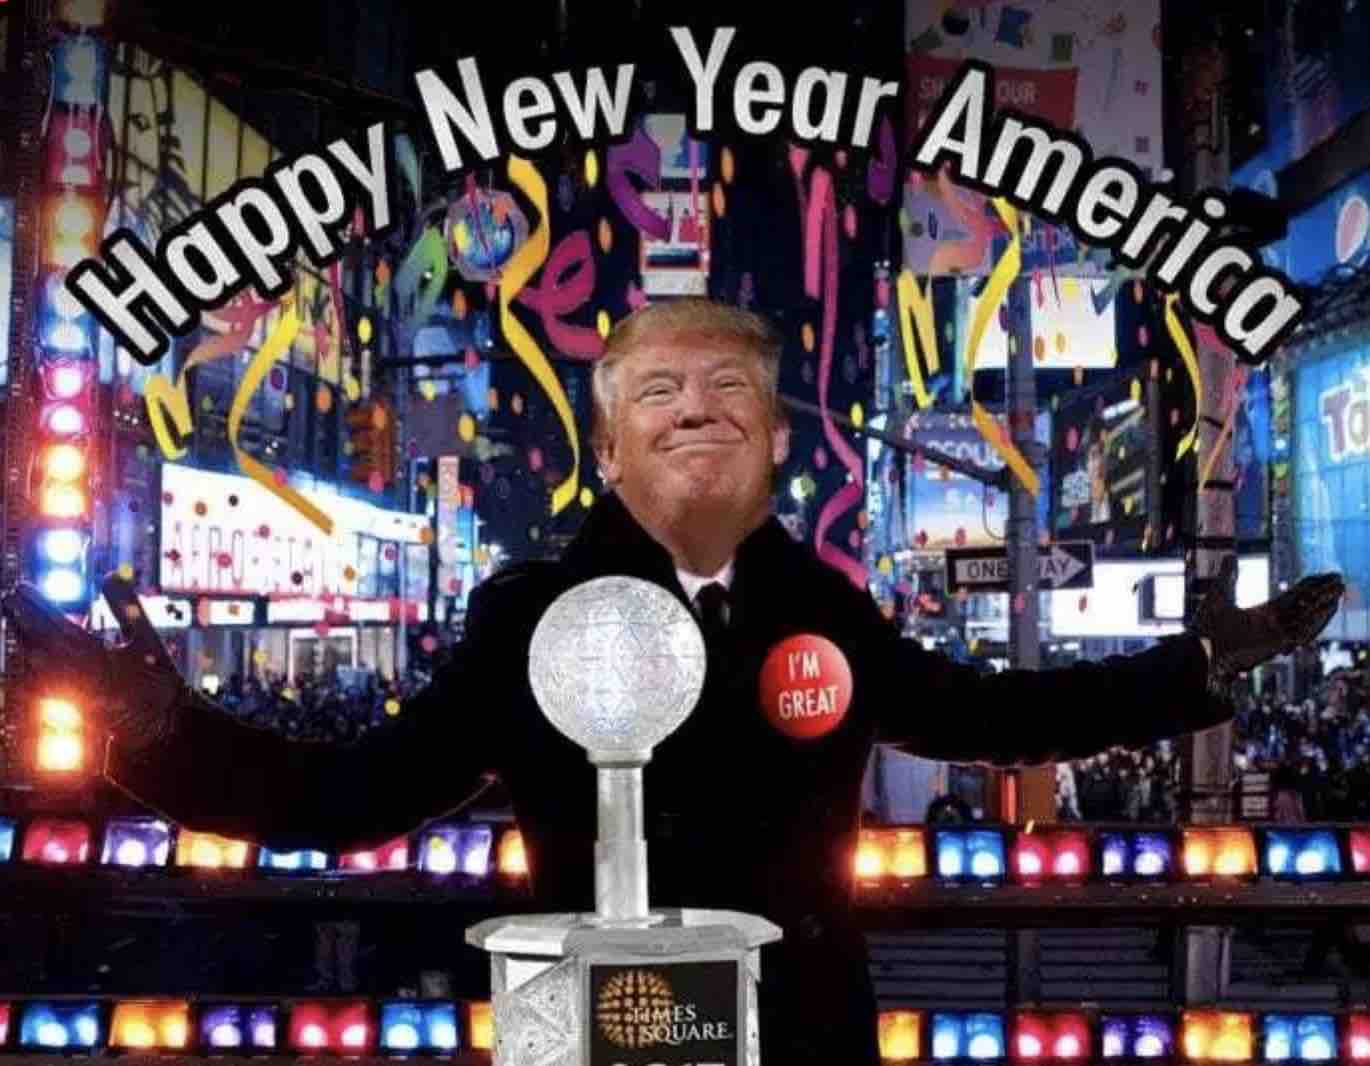 Donald Trump Happy New Year America in Time Square Meme